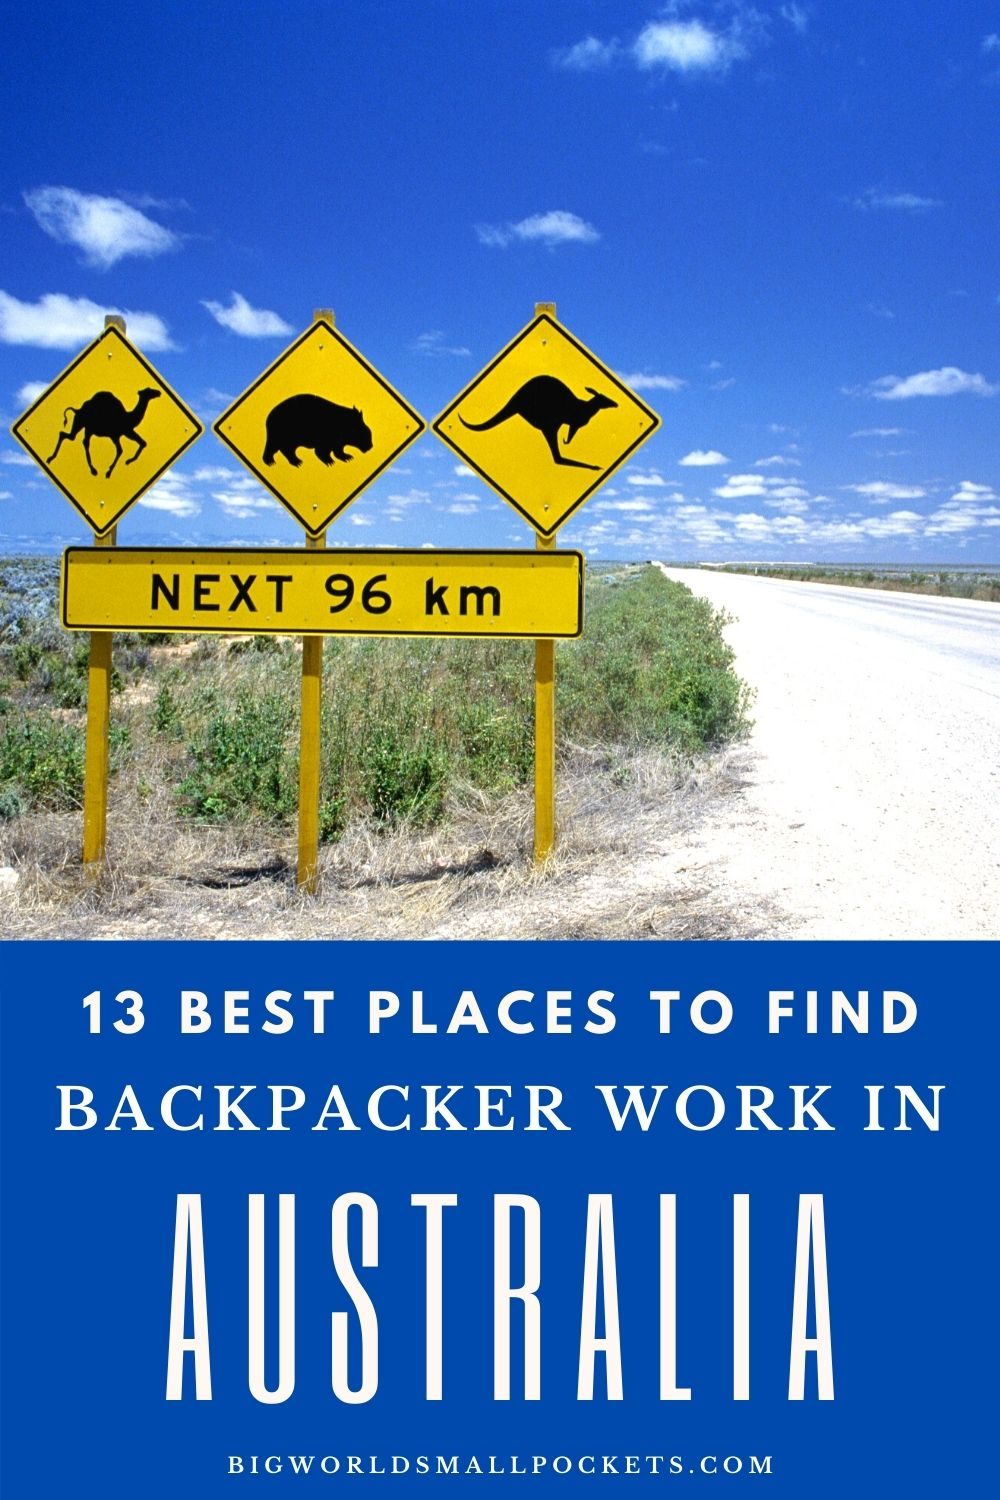 13 Top Places to Find Backpacker Jobs in Australia